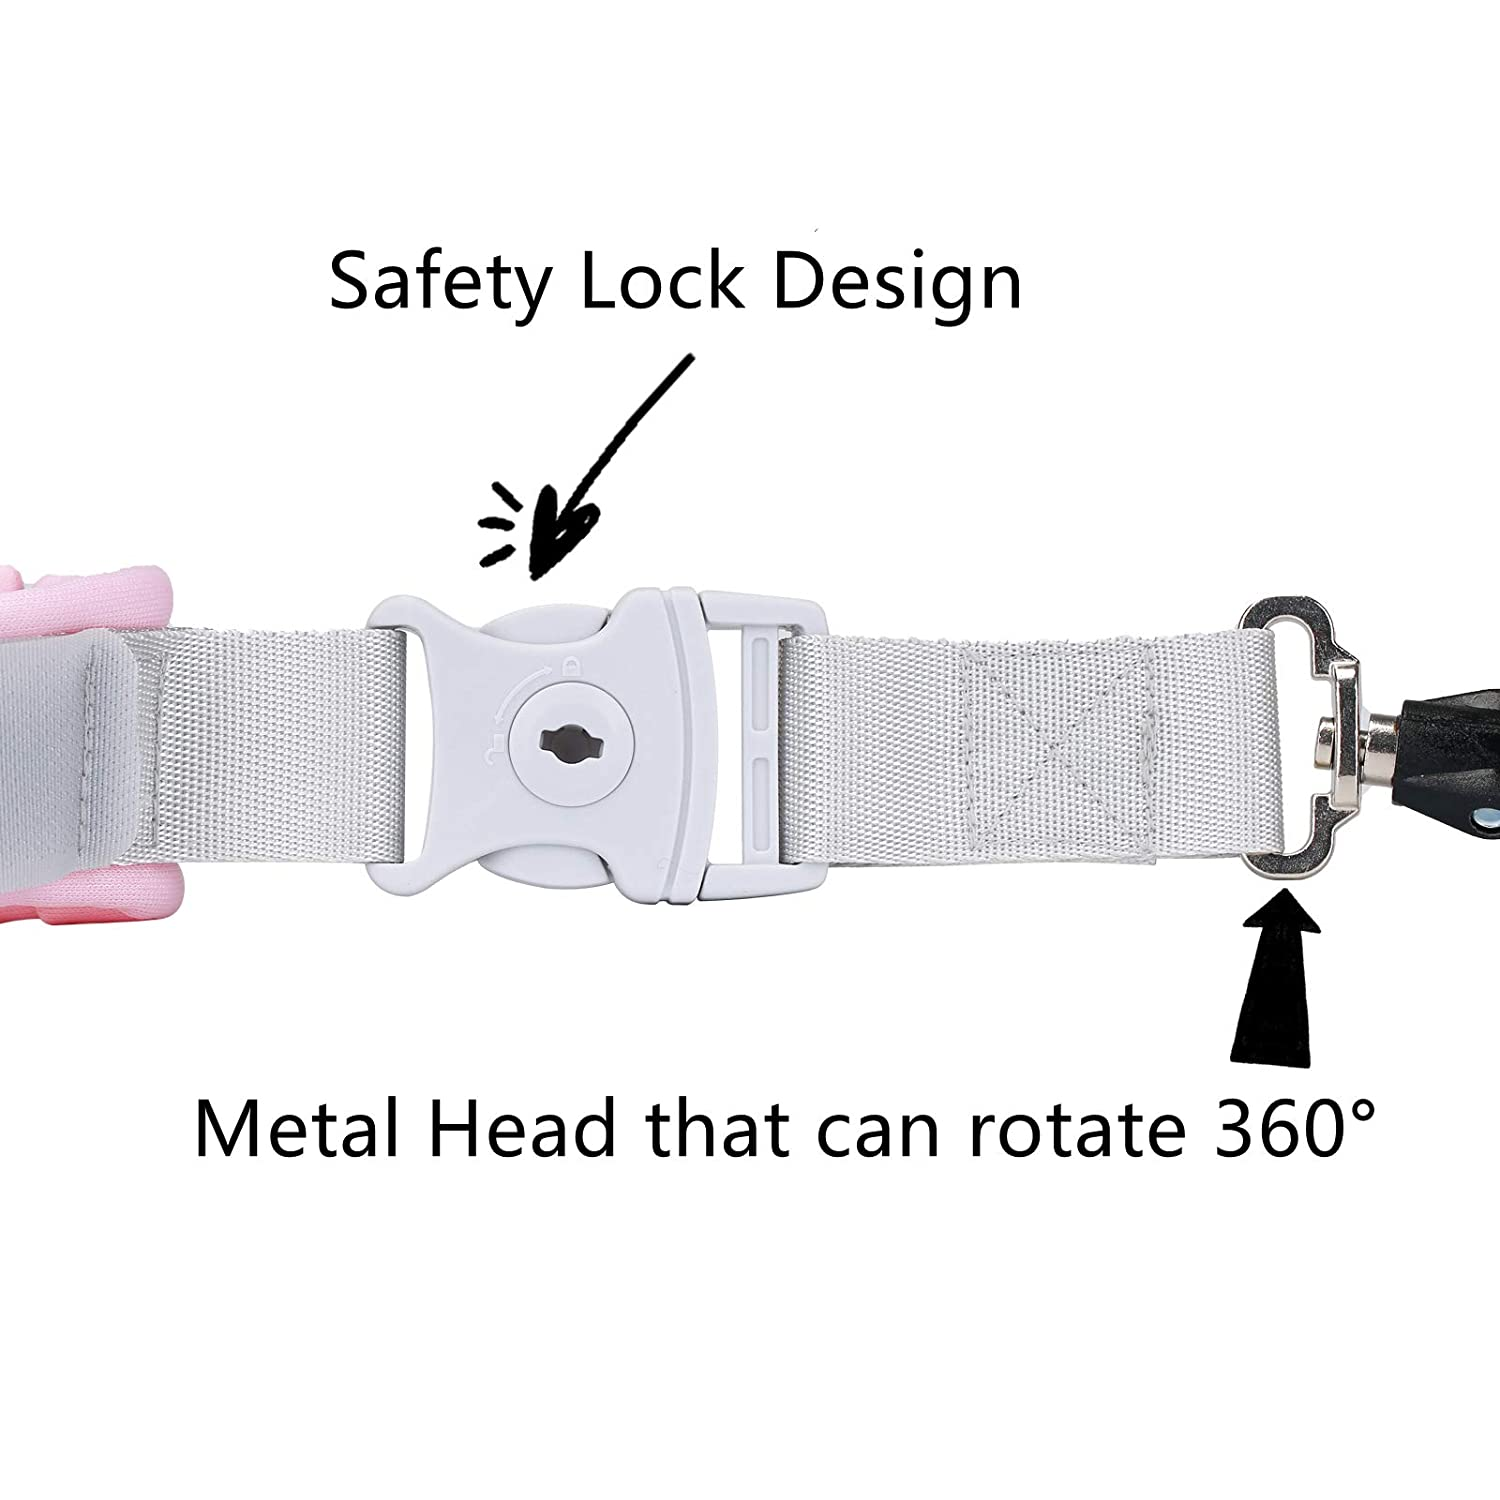 Cute Backpack Anti-Lost Rope,Toddler Safety Belt,Anti-Lost Rope Walking Safety Belt with Key Lock,Child Safety Belt,Baby Protection Belt,Length 8.2 Feet (Rabbit)